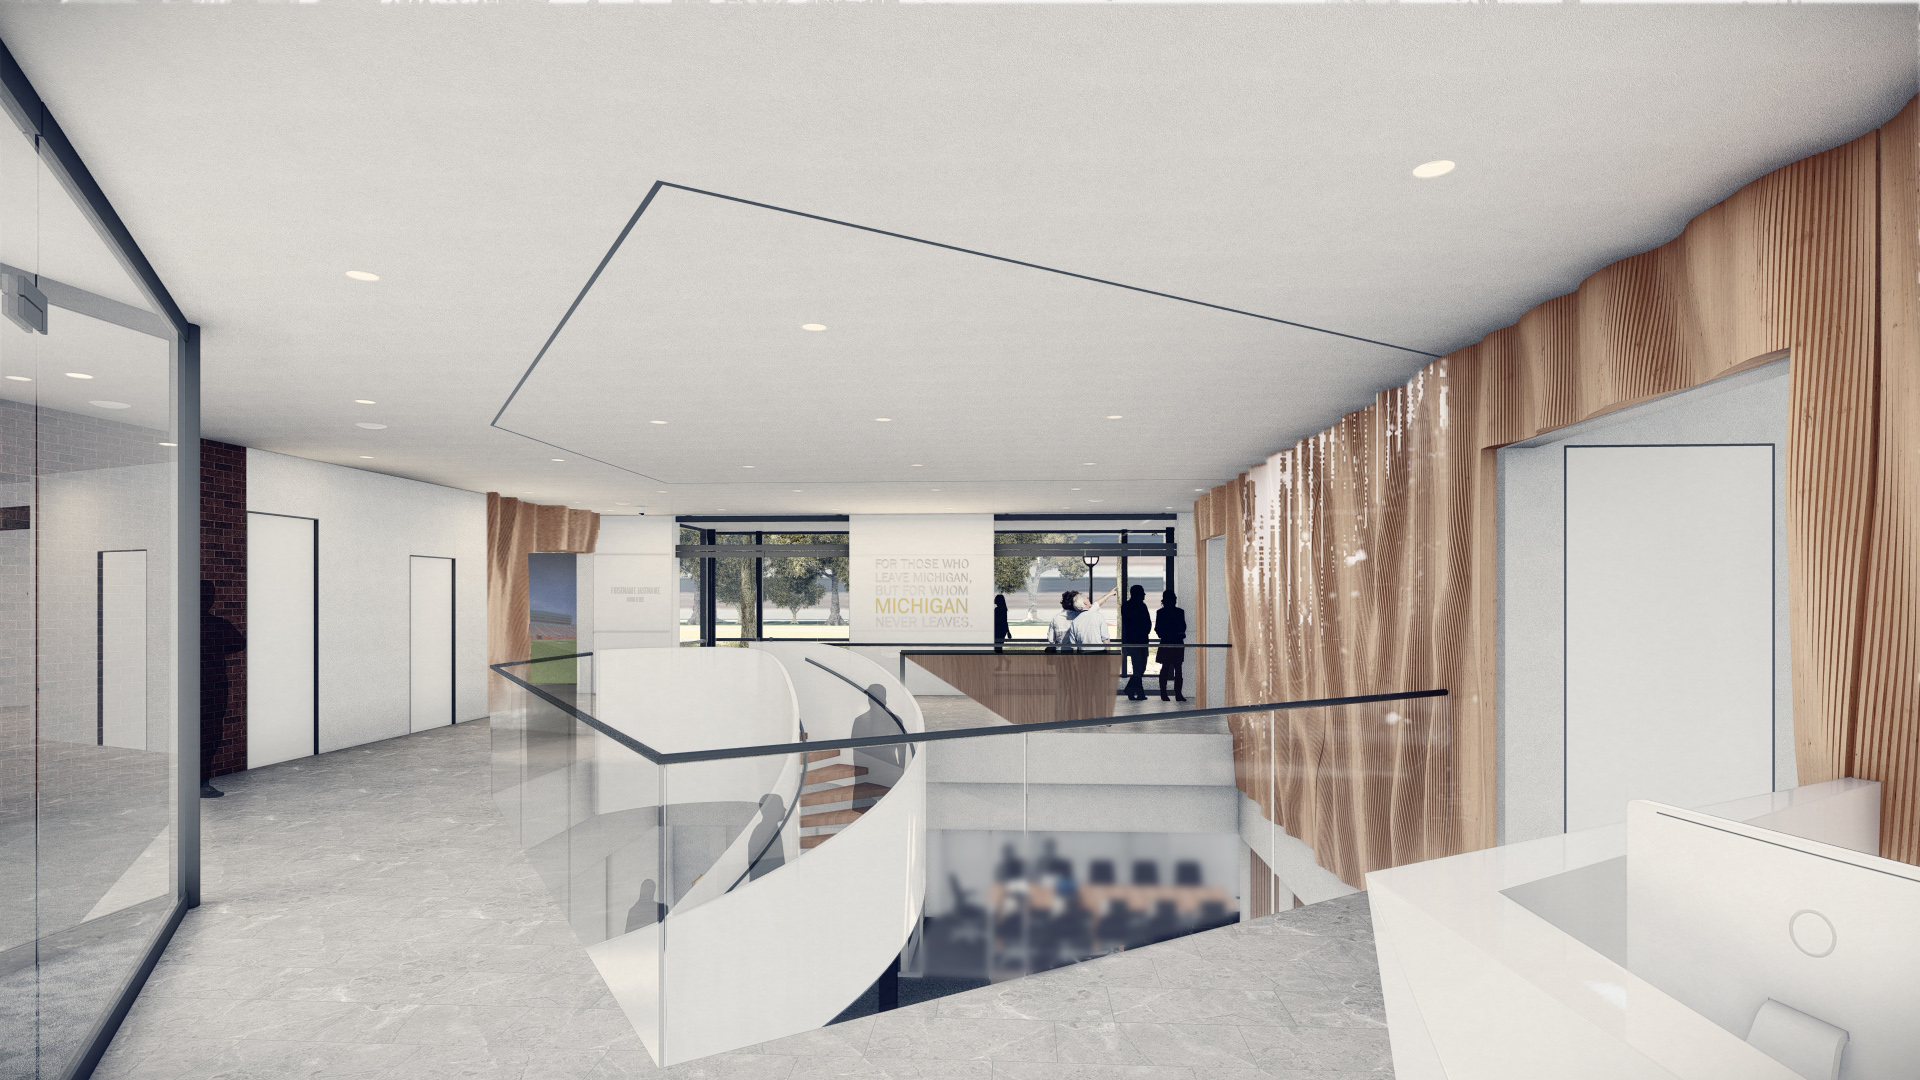 Rendering of the renovated Alumni Center's lobby